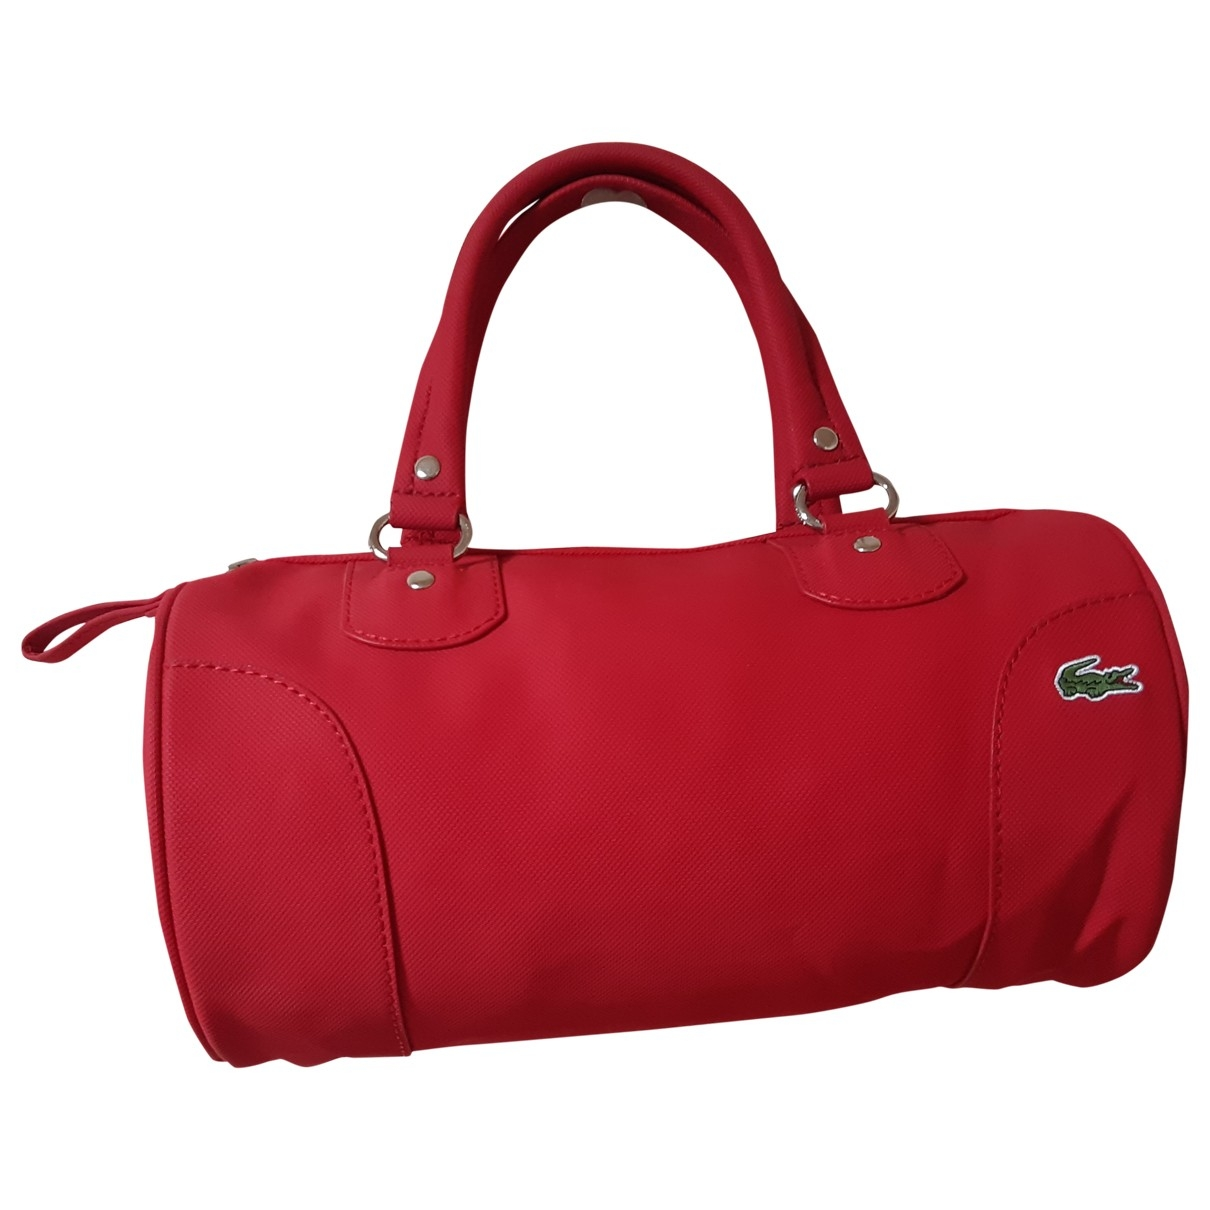 Lacoste \N Red handbag for Women \N